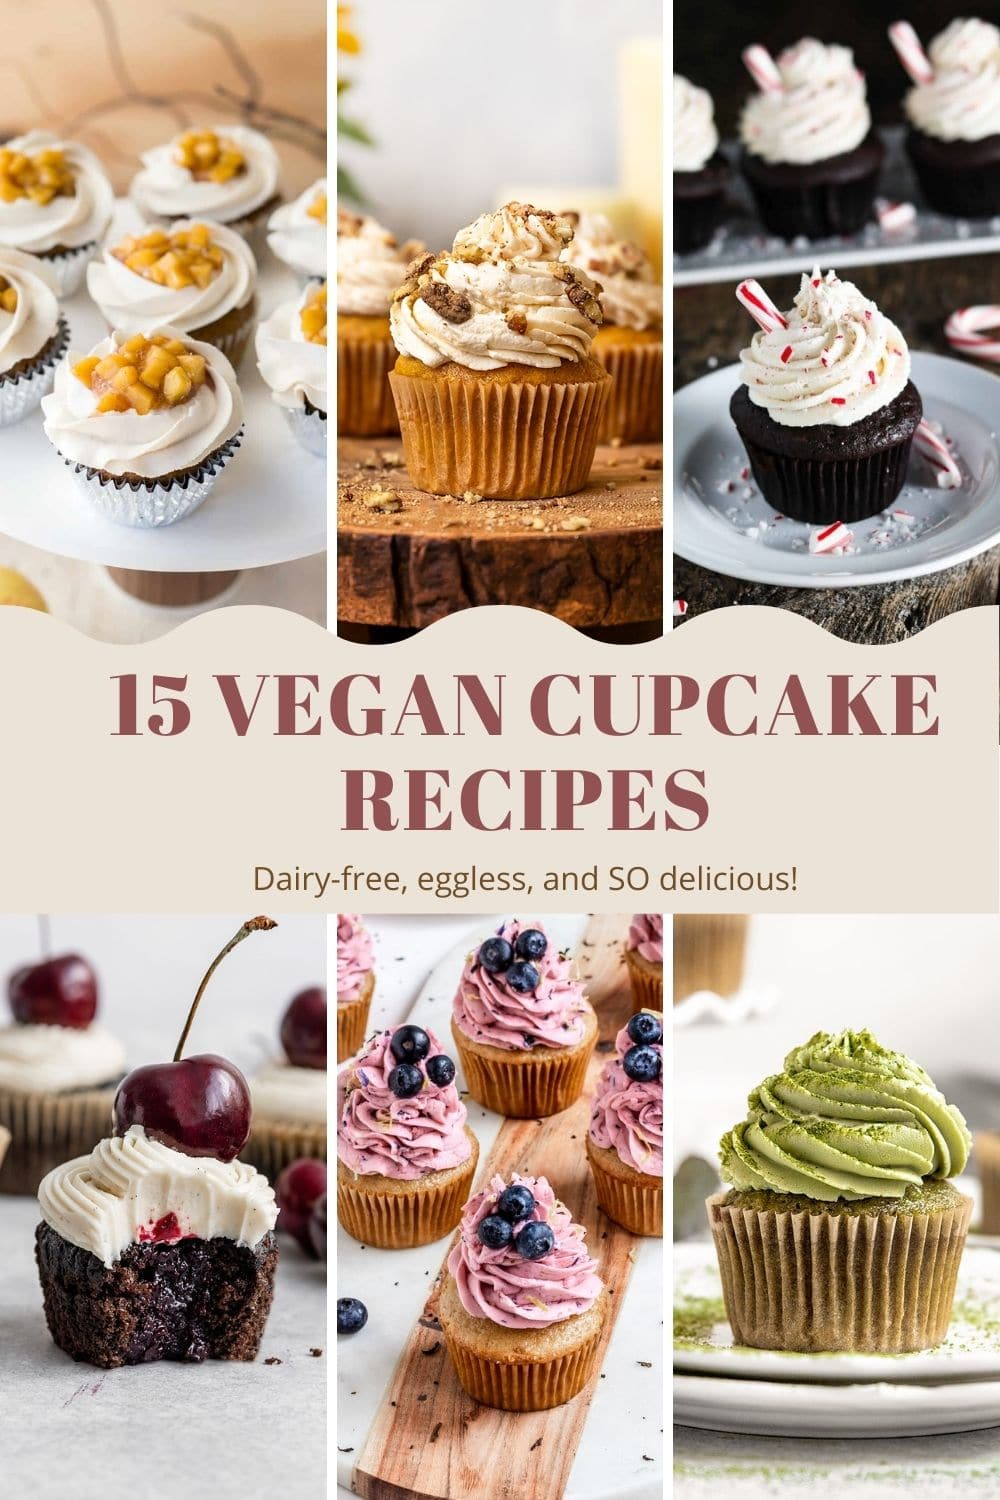 infographic with 6 pictures of vegan cupcakes and text that says 15 vegan cupcake recipes